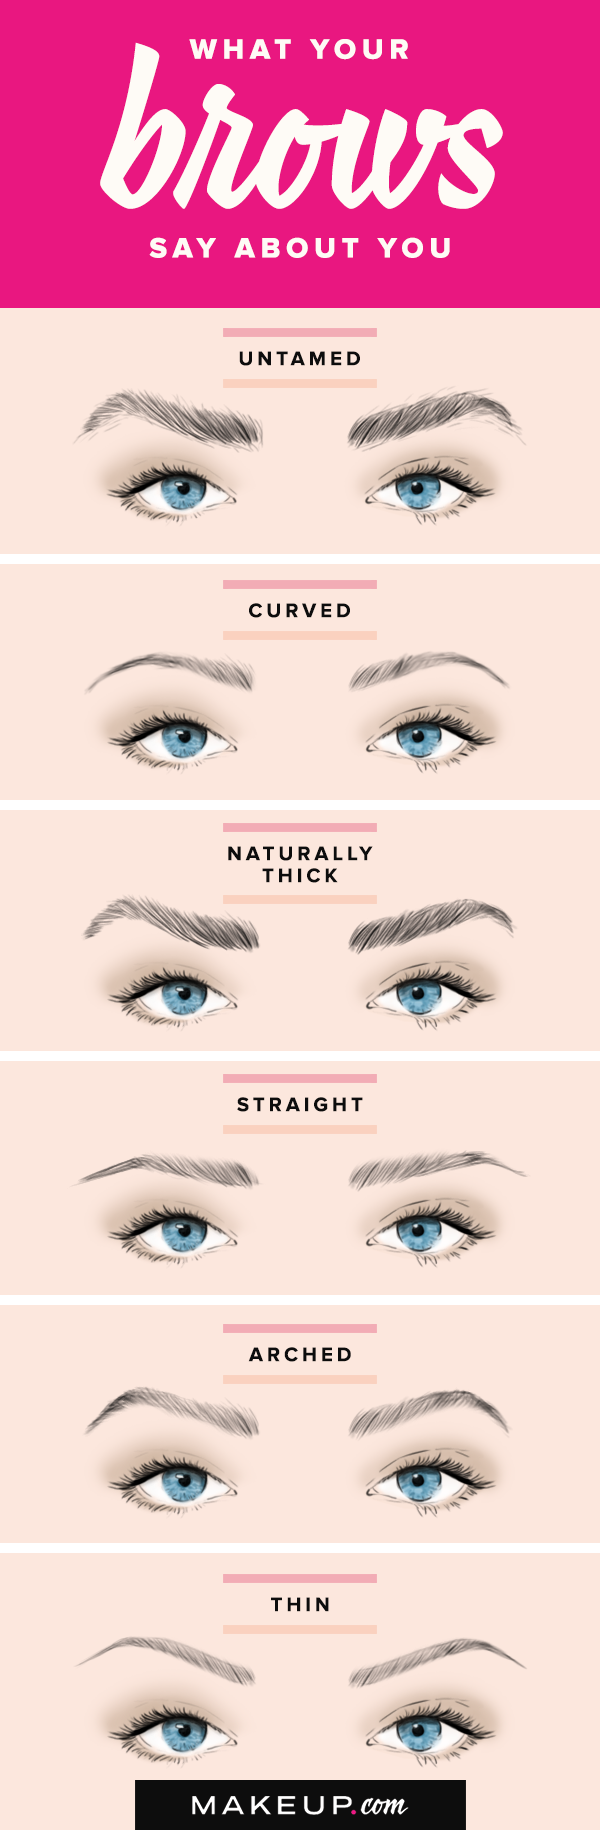 Thick Or Thin Eyebrows : thick, eyebrows, Eyebrows, About, Personality, Makeup.com, Eyebrow, Shape,, Makeup,, Makeup